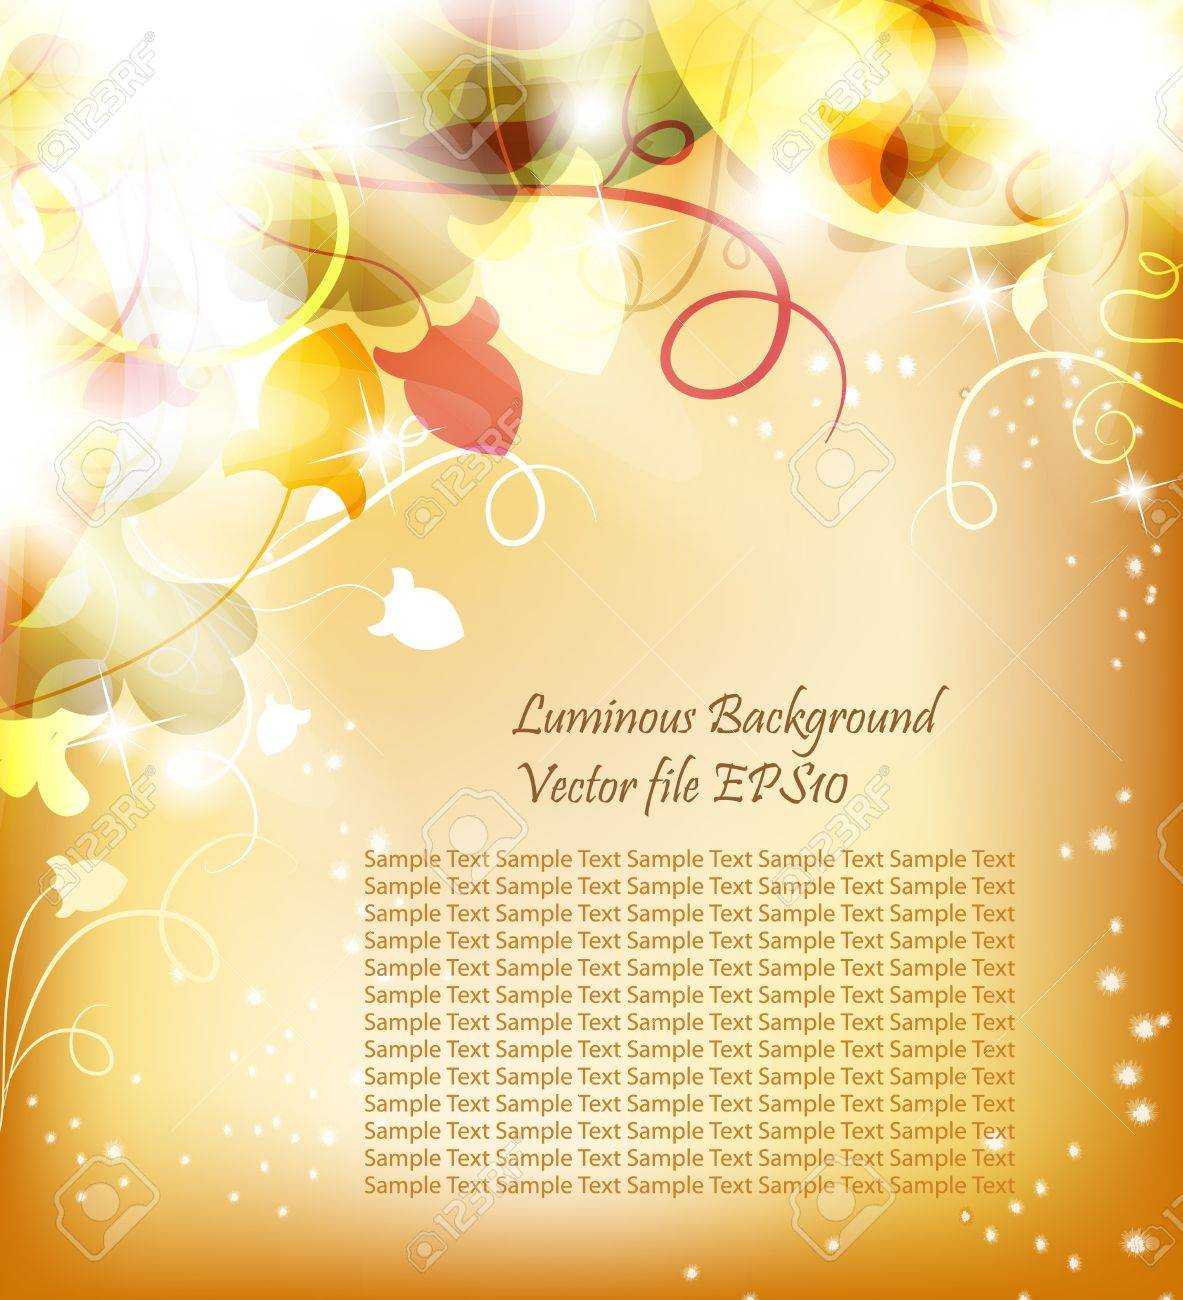 Golden Luminous background with flowers and bright light. Beautiful bright  harmonic colors. Place Your text if necessary. Stock Vector - 9356825